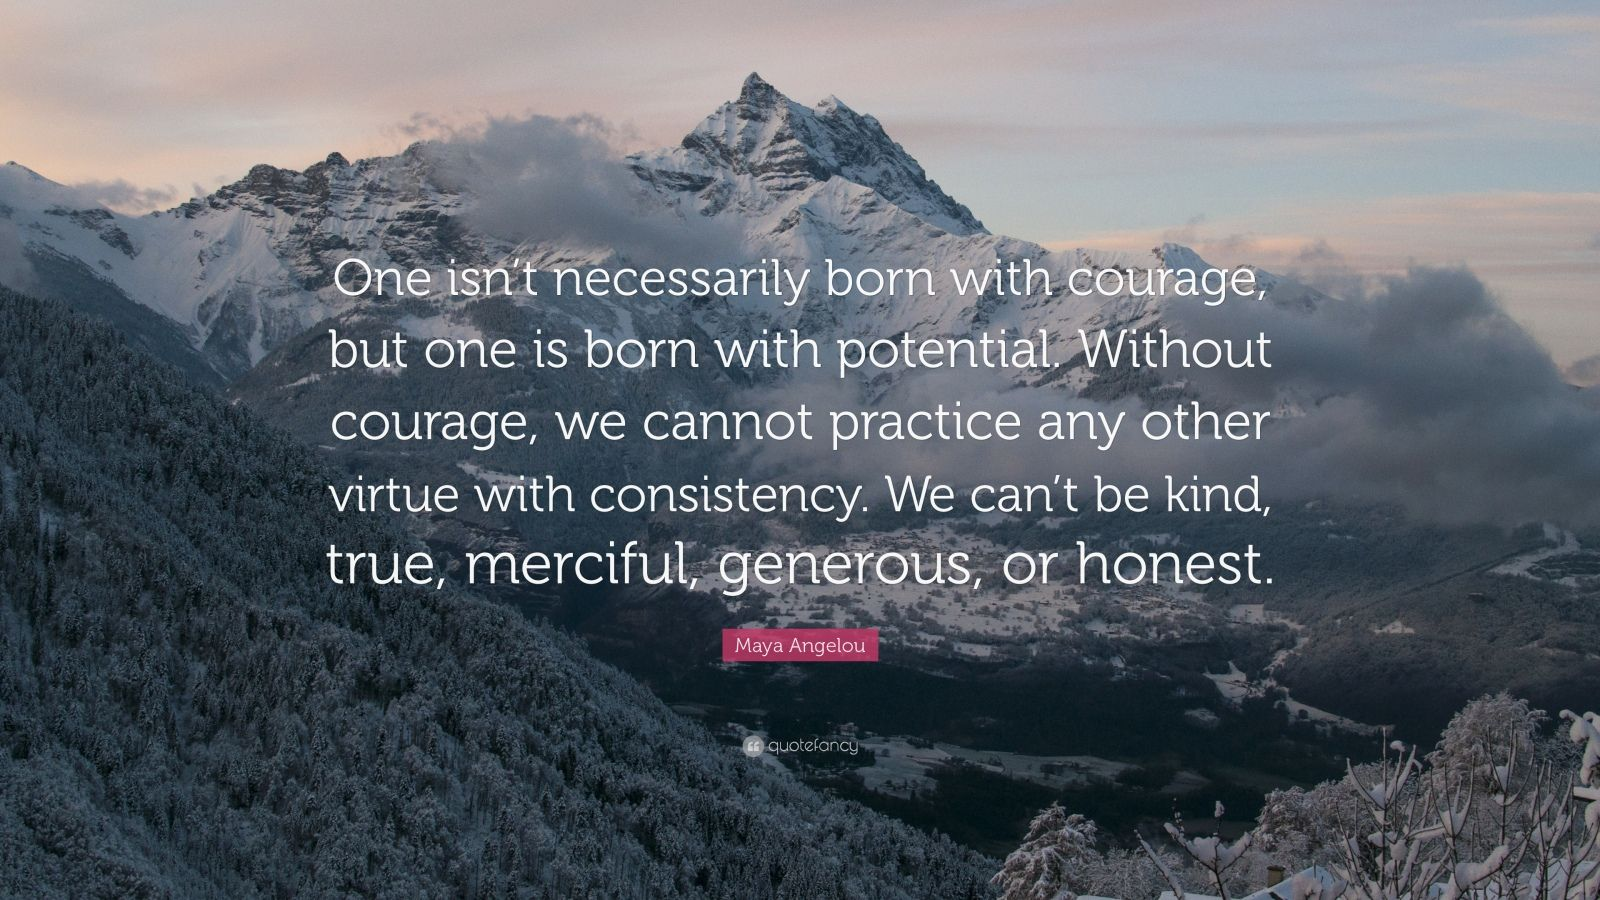 """Maya Angelou Quote: """"One isn't necessarily born with courage, but one is born with potential. Without courage, we cannot practice any other virtue with consistency. We can't be kind, true, merciful, generous, or honest."""""""